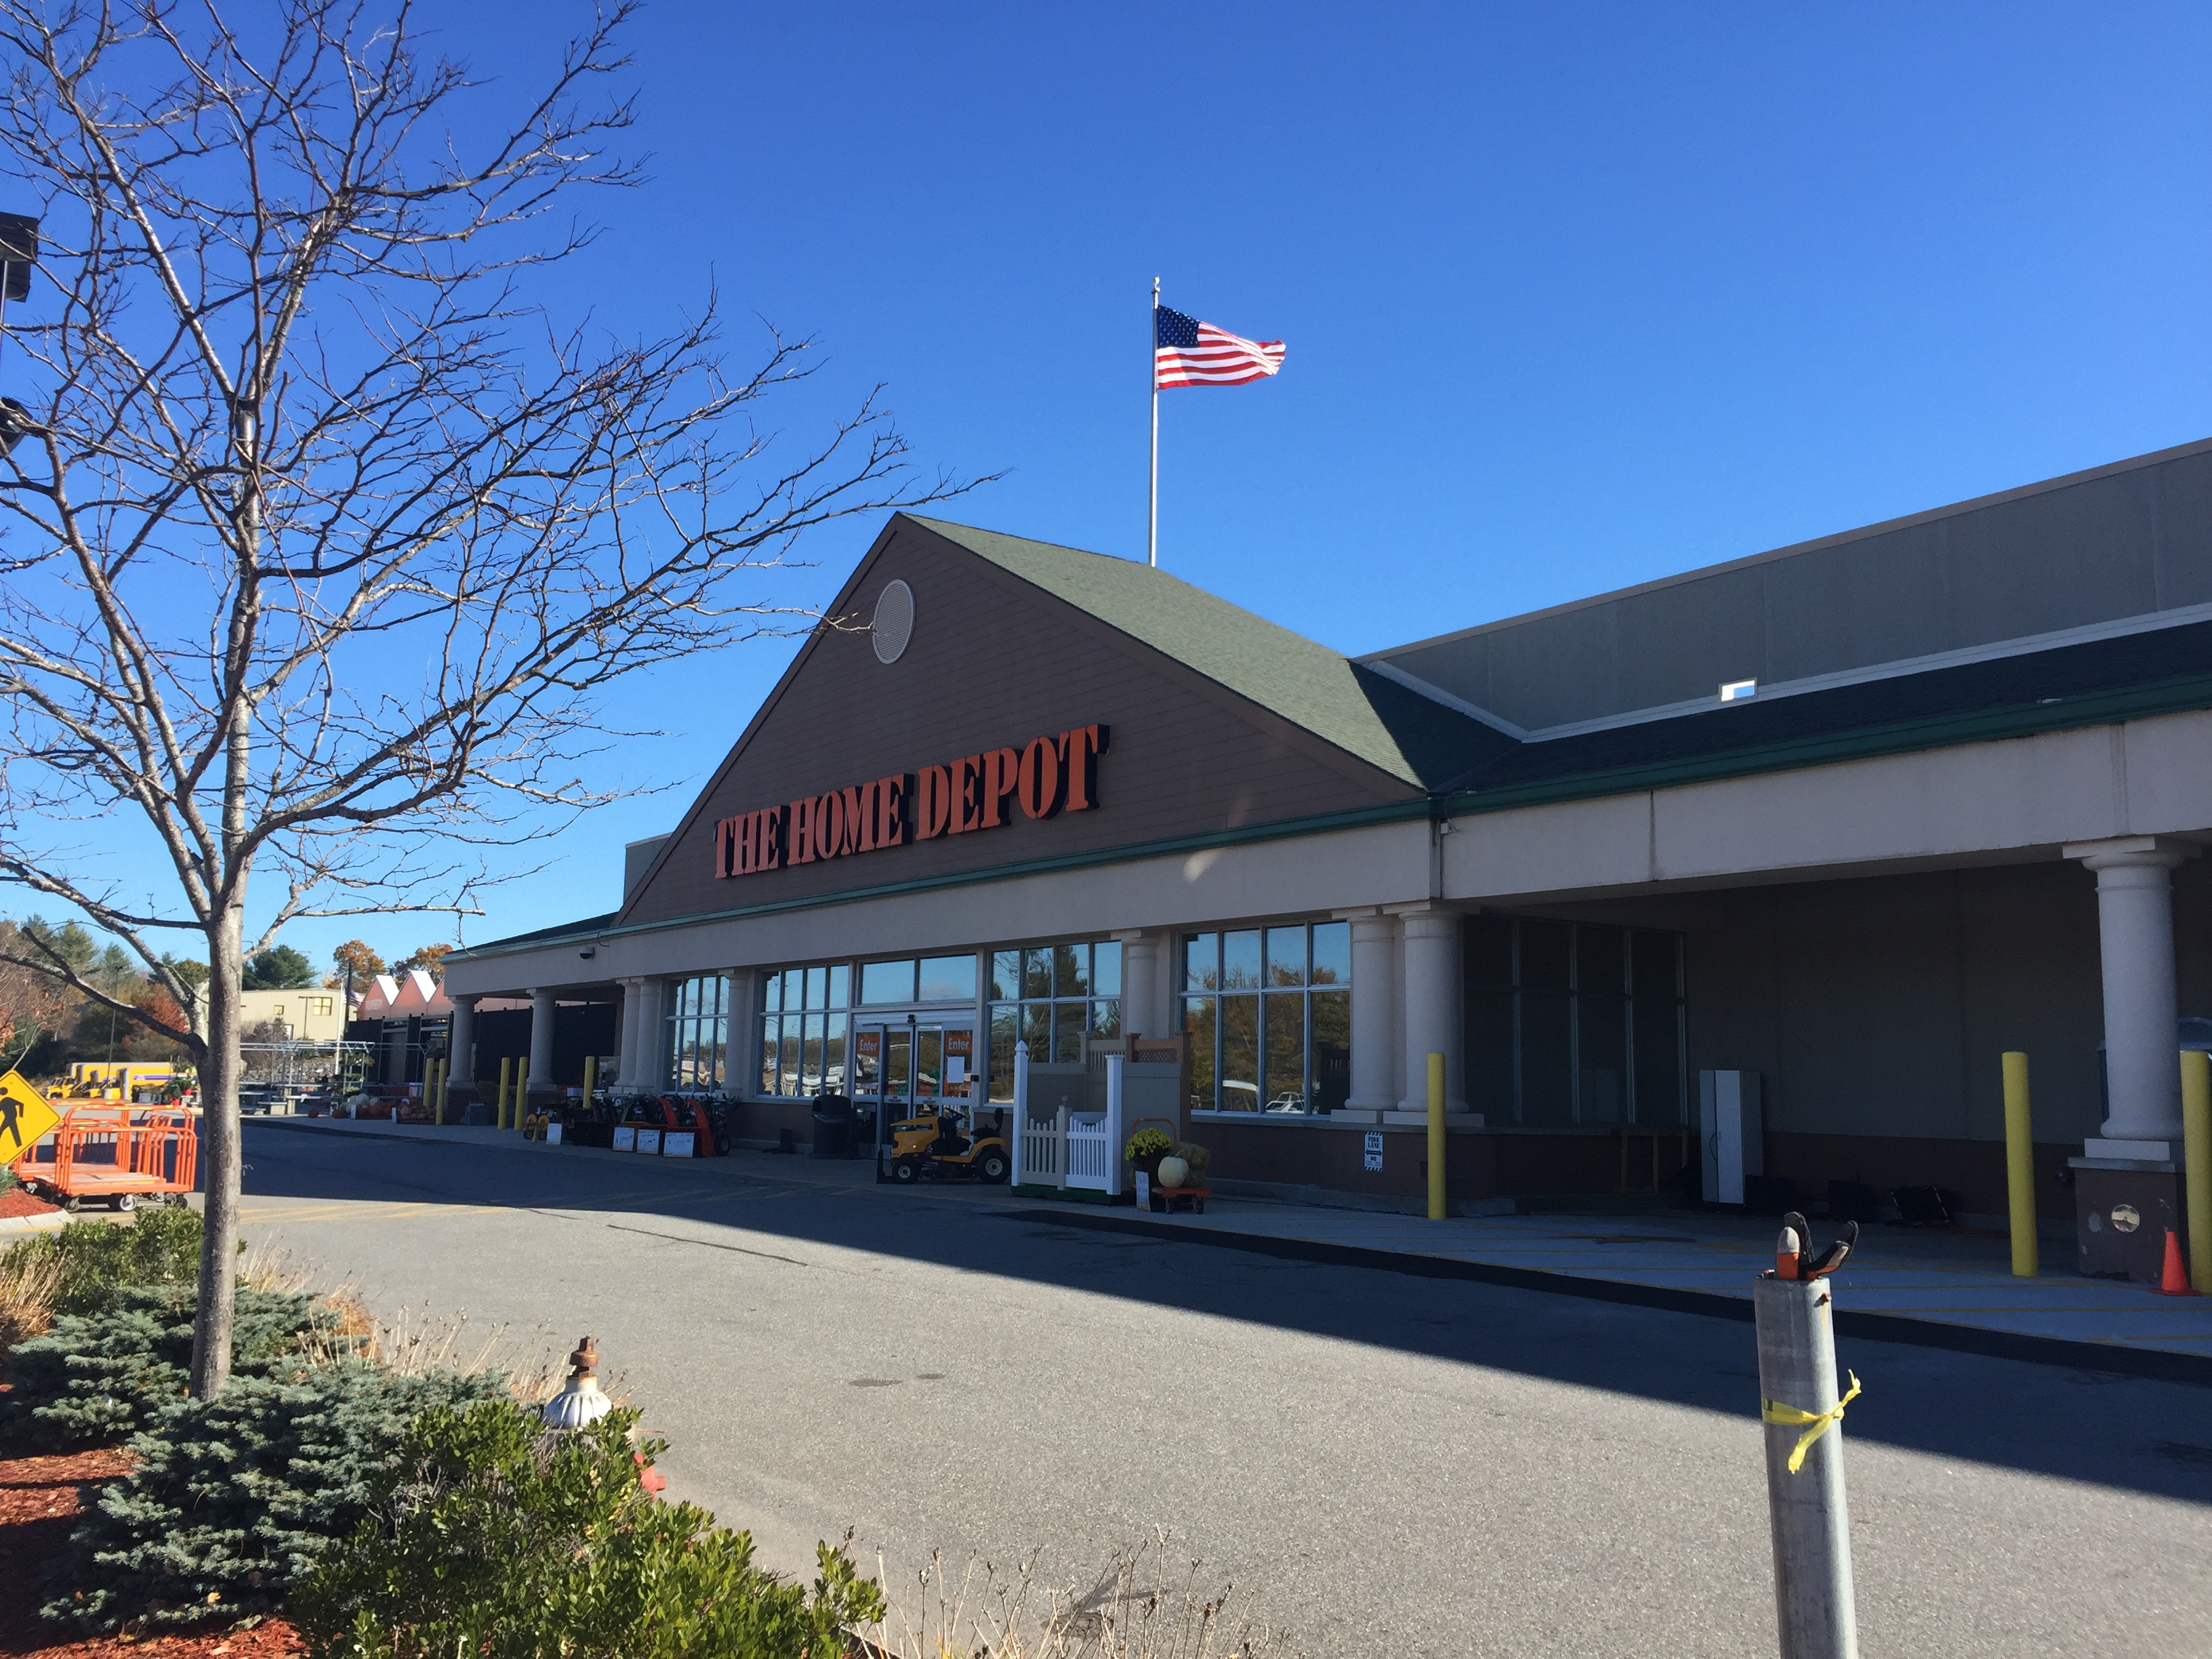 The Home Depot in Topsham, ME | Whitepages - photo#3